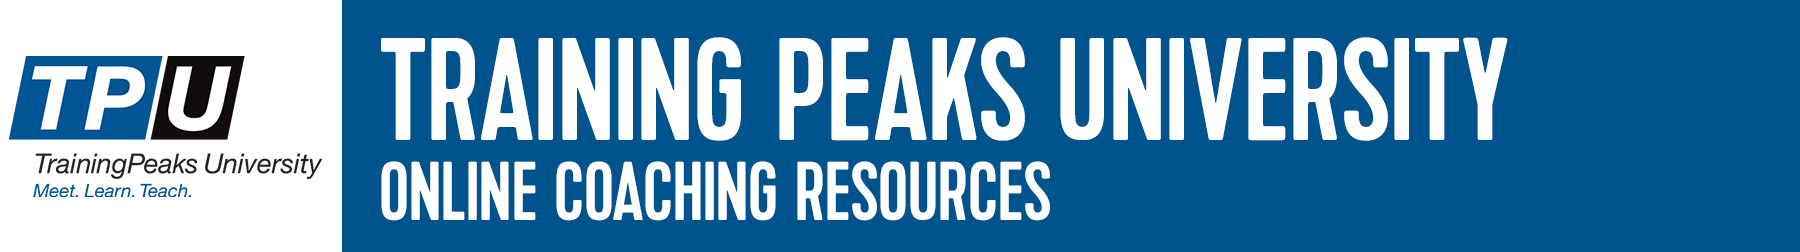 Training Peaks University Resources